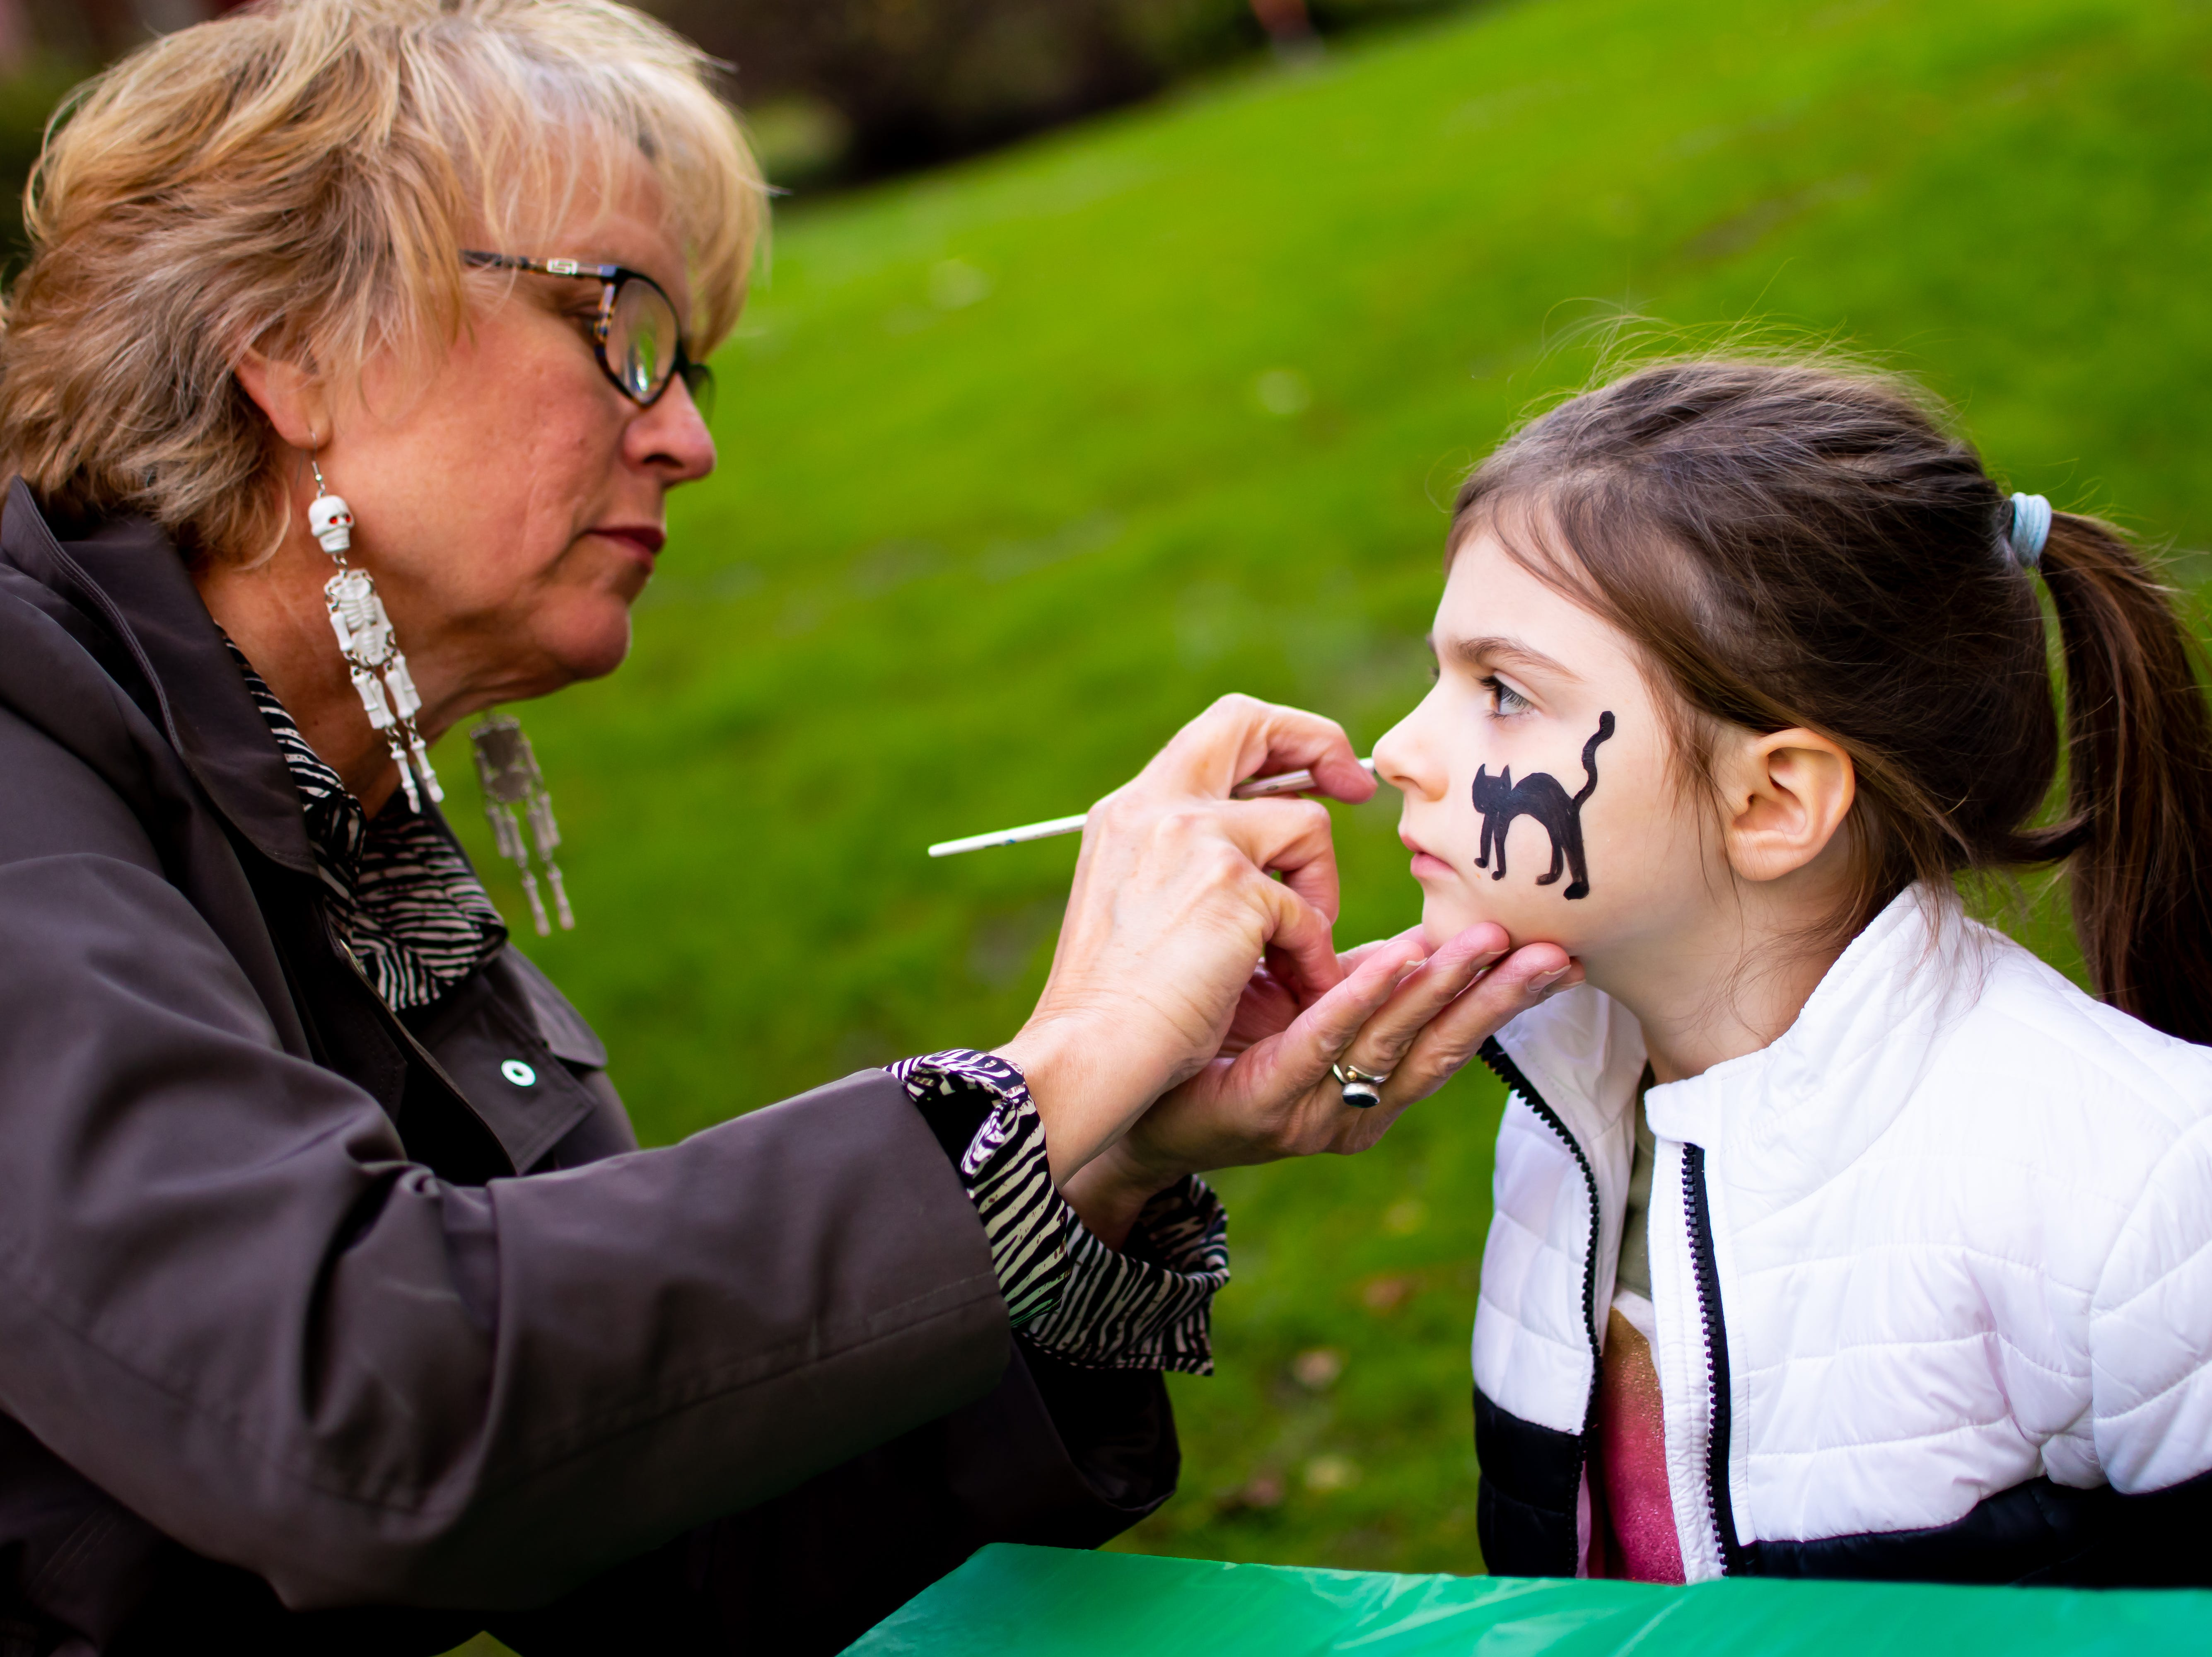 Chelsea Miller, 4, of Waukee gets her face painted  by Paula Nelson on Tuesday, Oct. 16, 2018 for the Waukee Area Chamber of Commerce fall after hours party at Timberline Campground in Waukee.